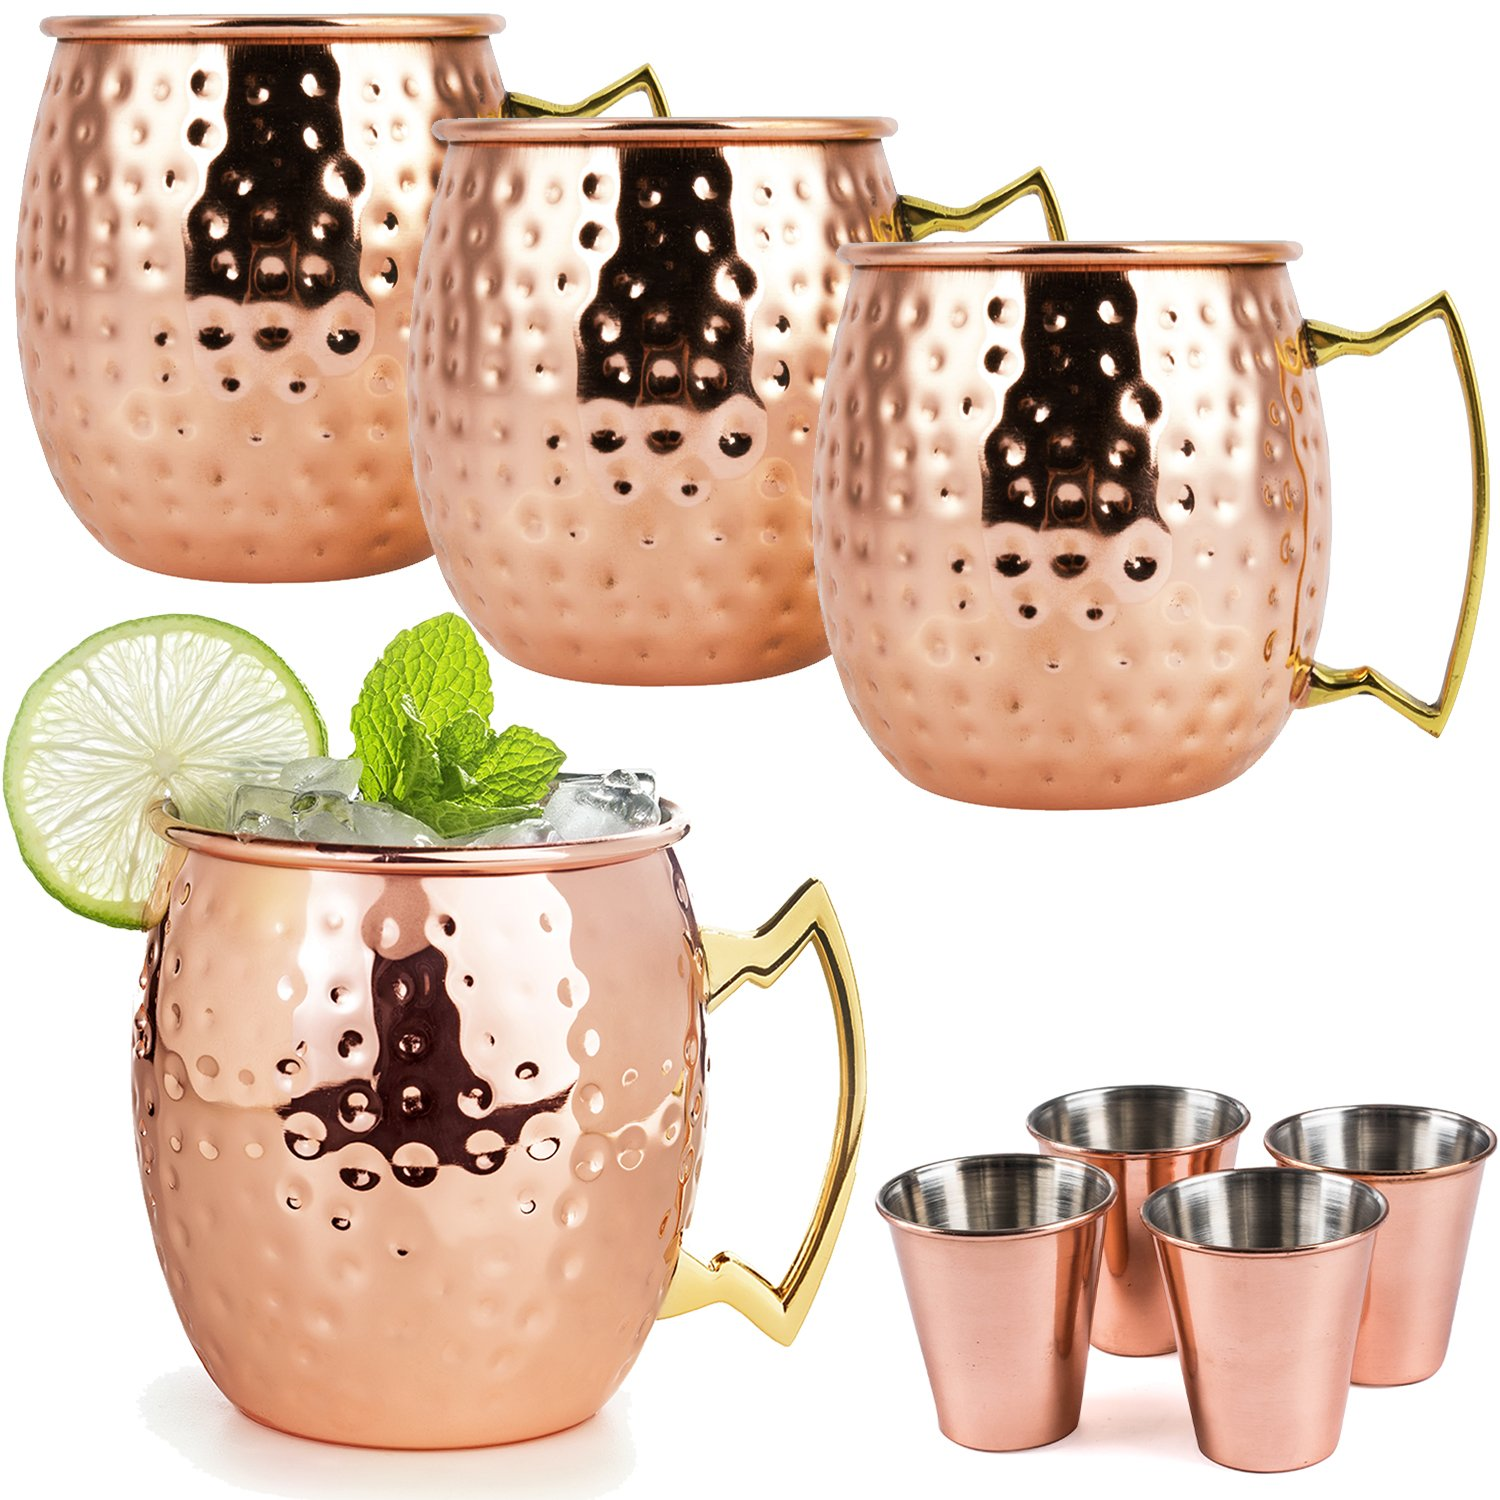 Moscow Mule Copper Mugs - 8 Piece Set - Mule Mugs Set of 4 with 4 Copper Shot Glasses Set of 4 - Pure Copper, 16 Ounce Mugs, Hammered Finish - Moscow Mule Gift Set by Colleta Home